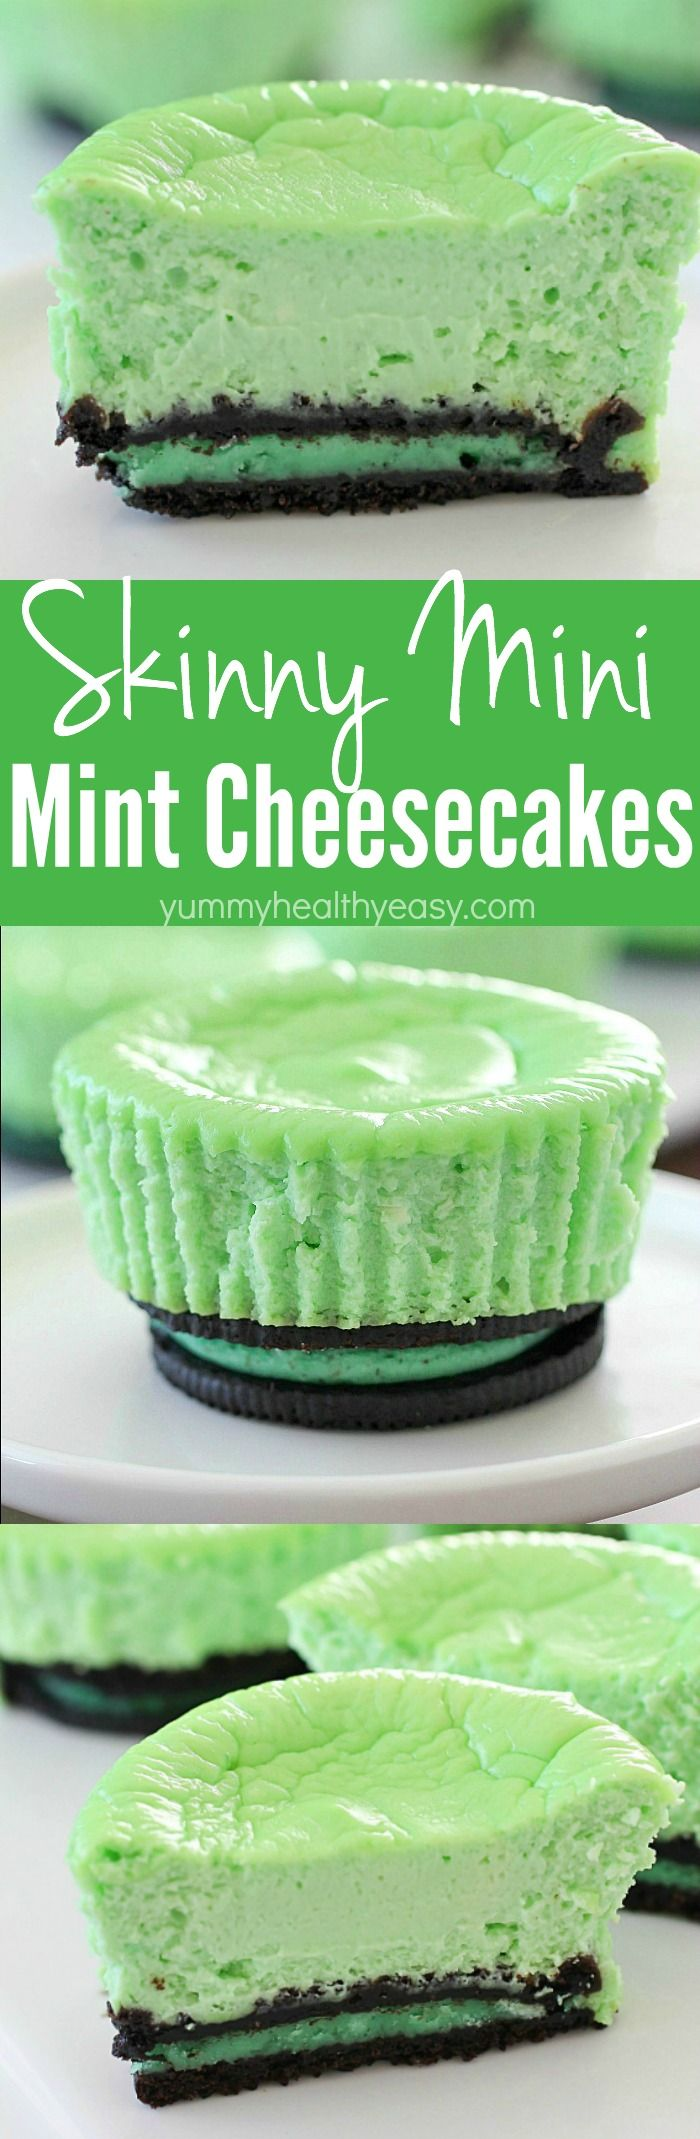 Skinny Mini Mint Cheesecakes with an Oreo crust! This lighter mint cheesecake recipe is super easy to make and you only need a few ingredients to whip up a batch. These cute cheesecakes have less calories than a regular cheesecake plus built-in portion control with the muffin size!